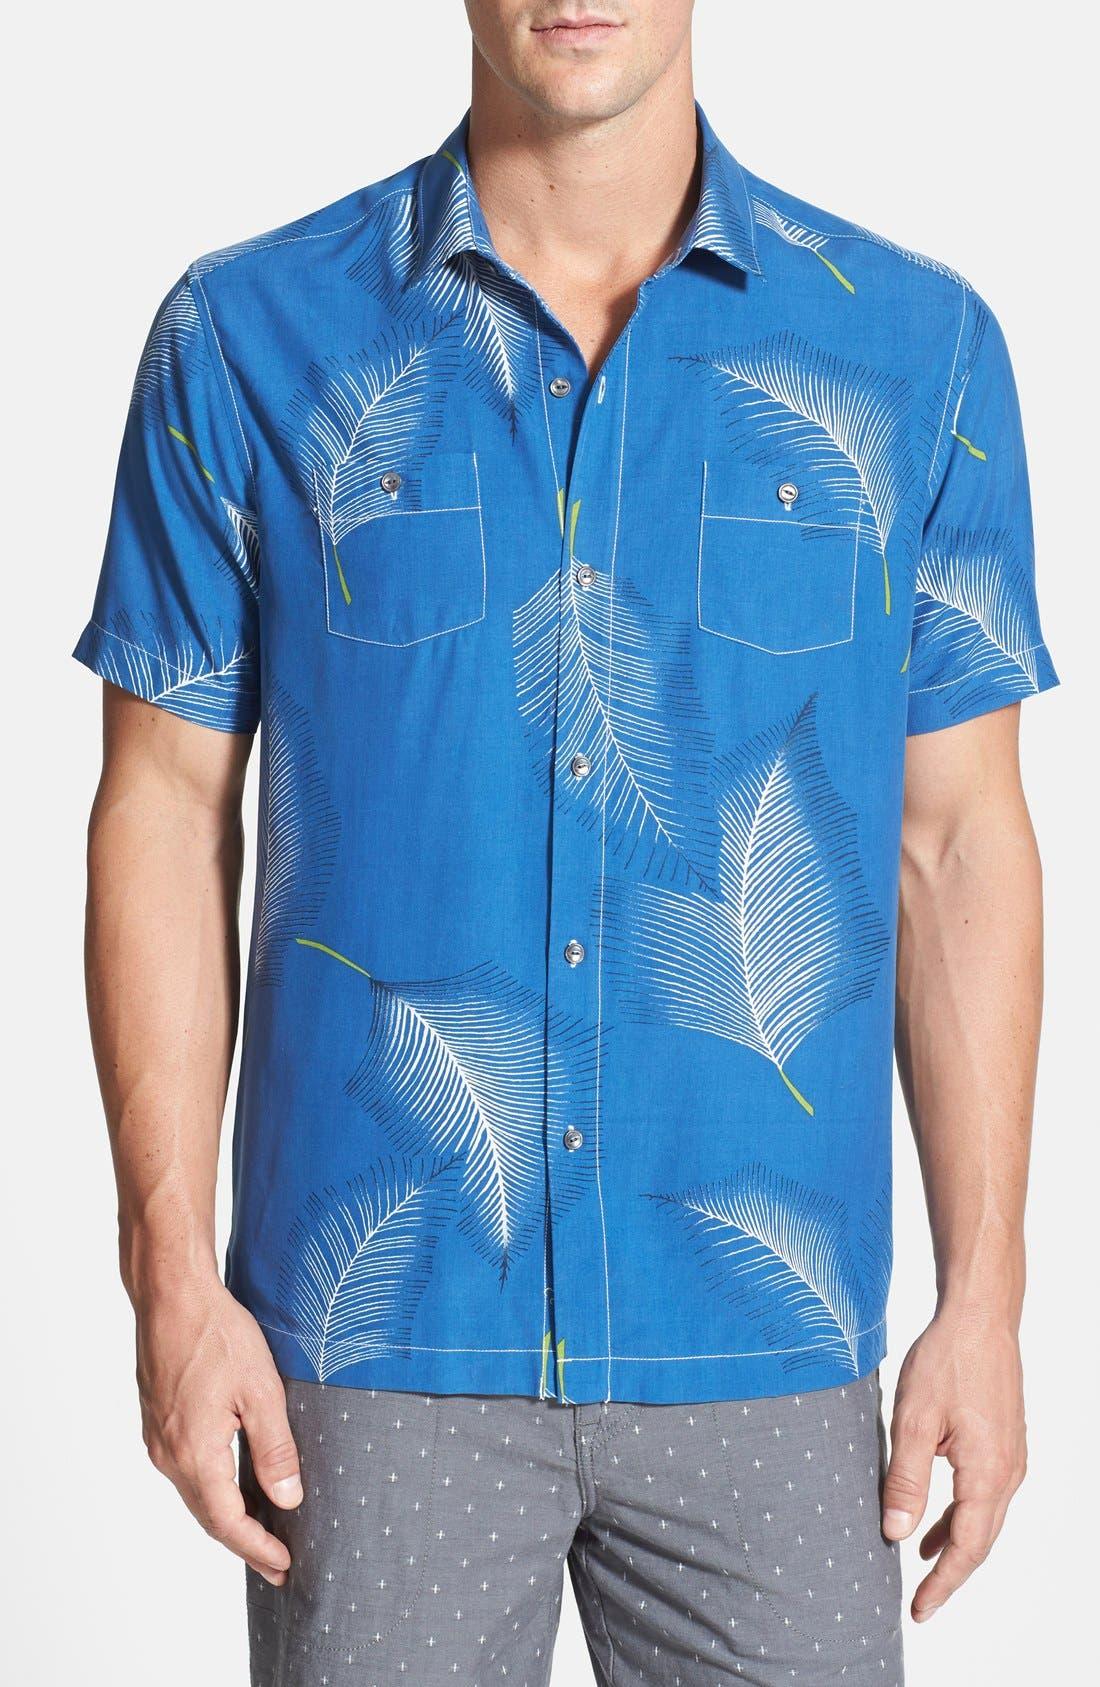 Main Image - Tommy Bahama 'Feathered Fronds' Island Modern Fit Silk Campshirt